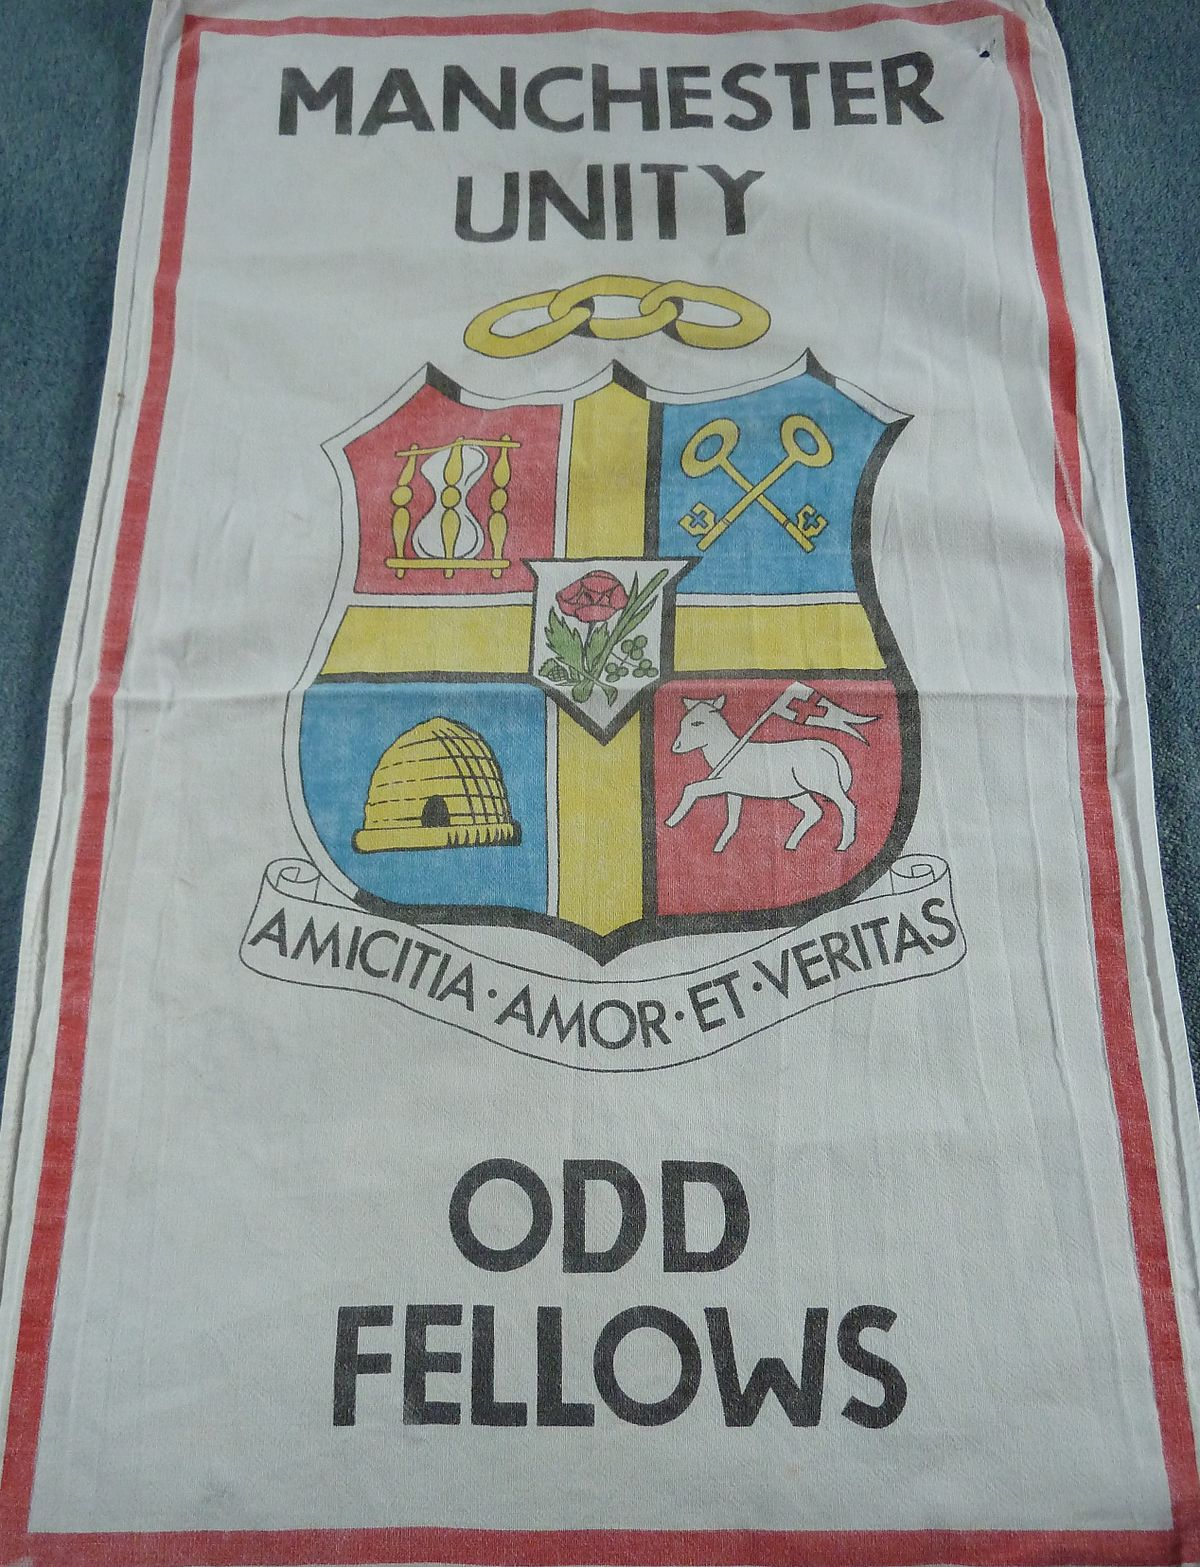 Independent order of oddfellows manchester unity wikipedia biocorpaavc Image collections